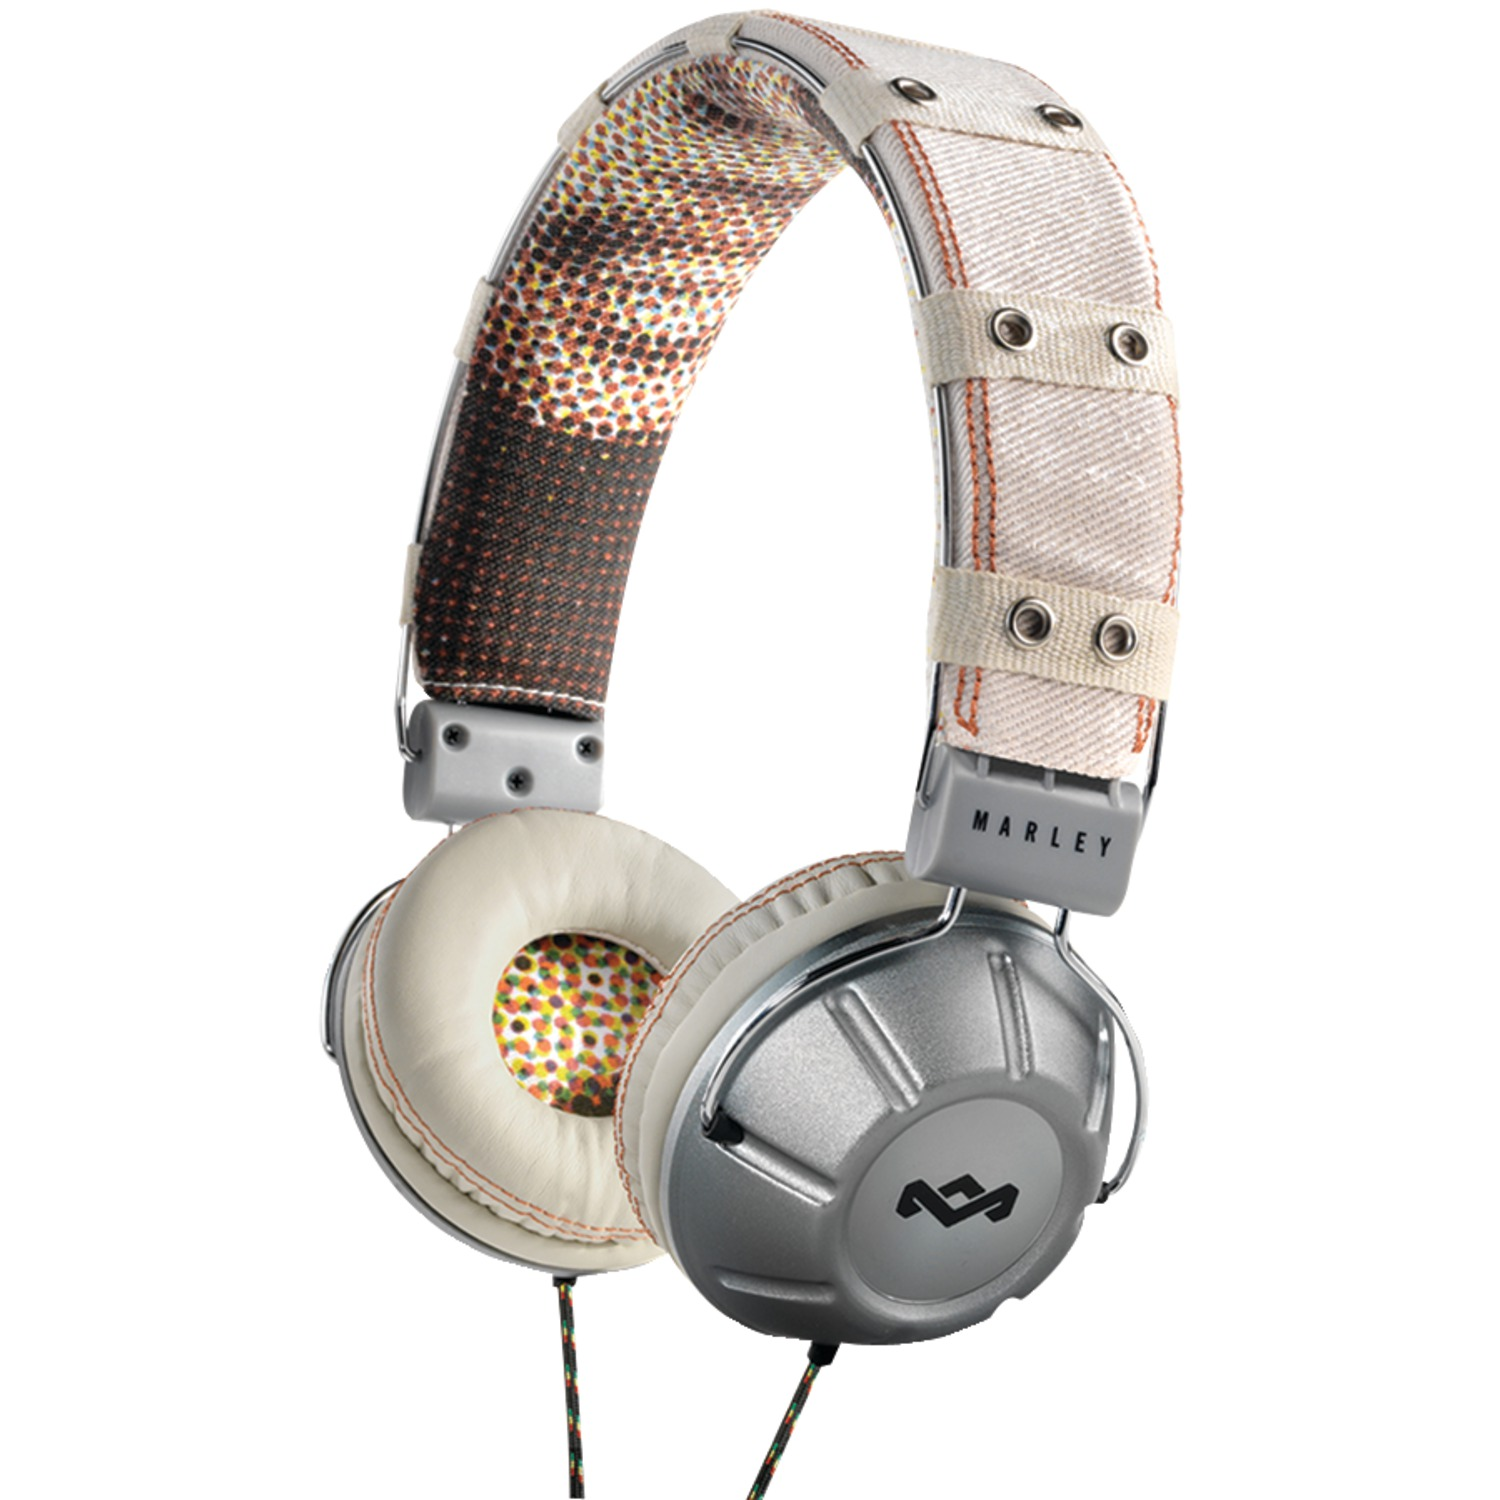 HOUSE OF MARLEY EM-JH001-DU Jammin' Over-Ear Rebel(TM) Dubby Headphones with 1-Button Microphone